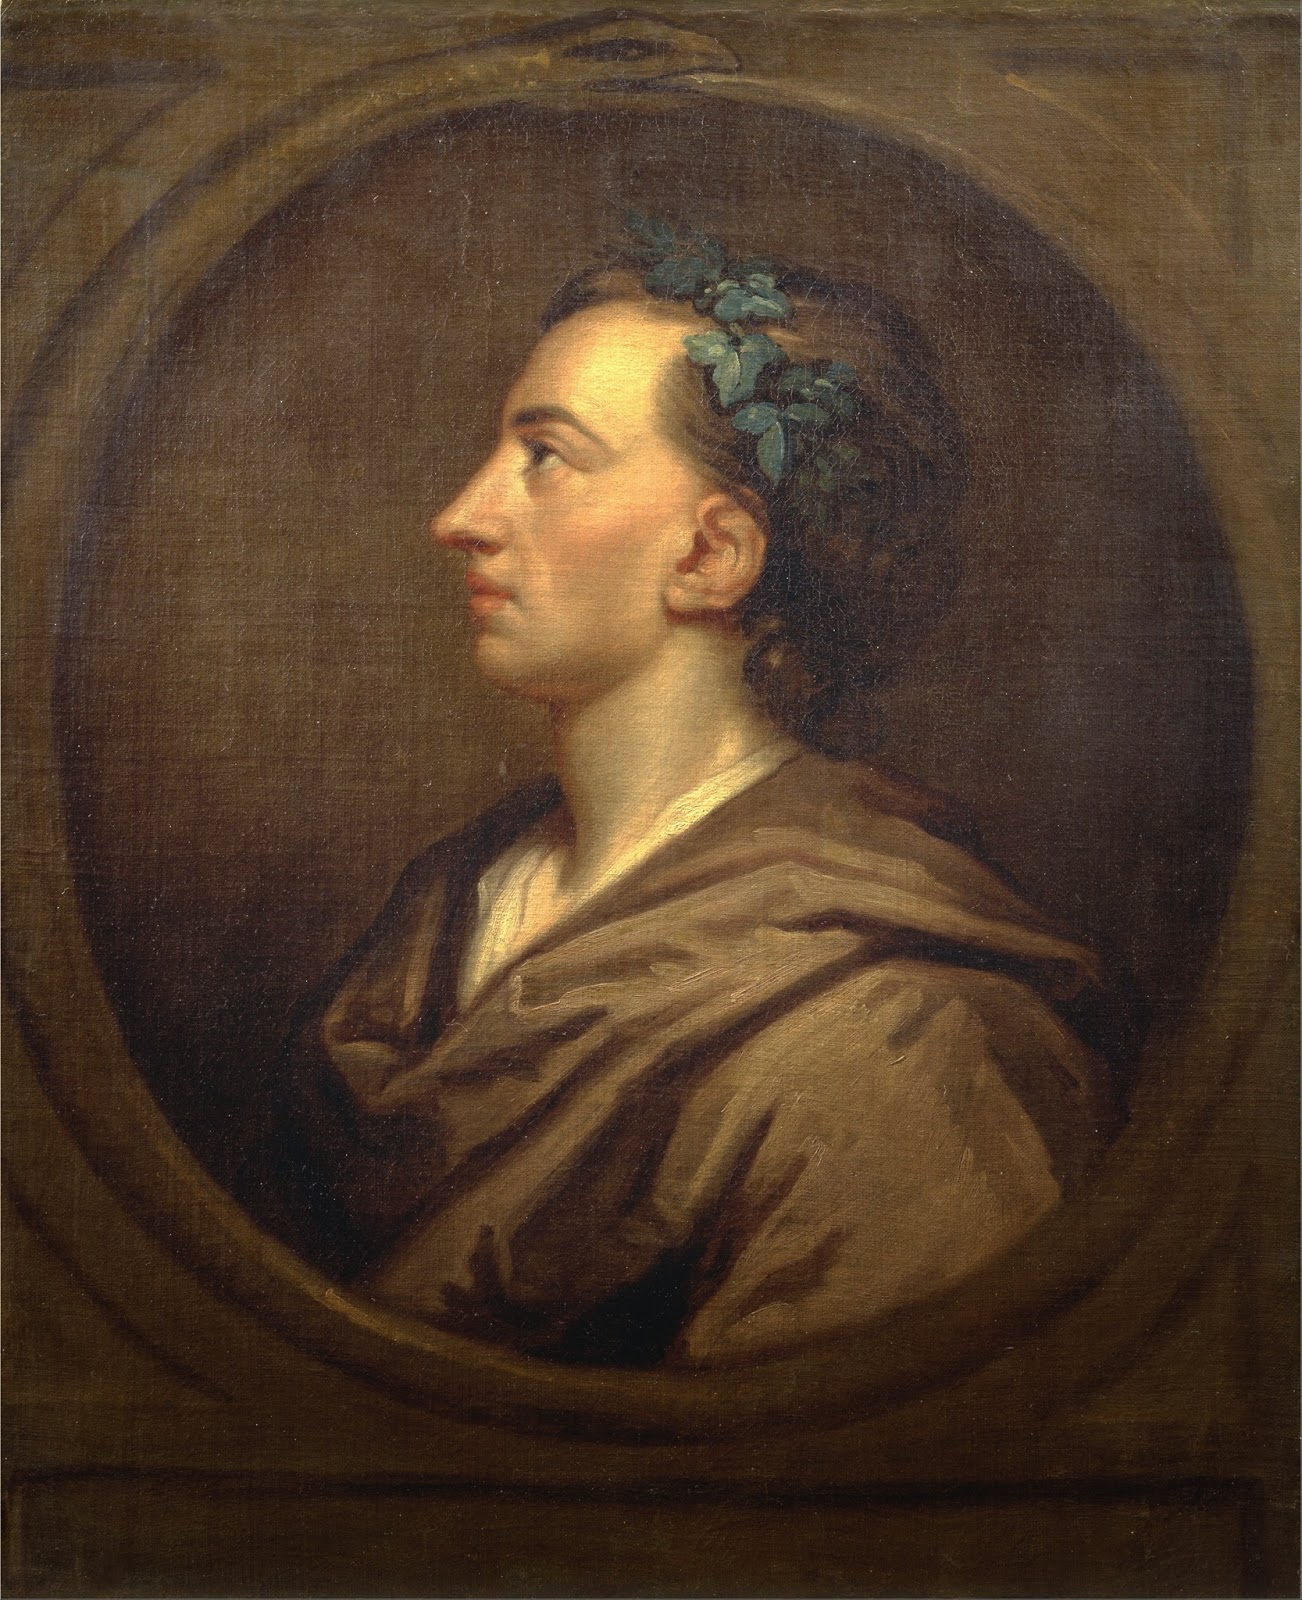 rembrandt to reynolds english and dutch painting during the sir godfrey kneller alexander pope crowned ivy c 1721 oil on canvas 28 27 x 22 9 in yale centre for british art